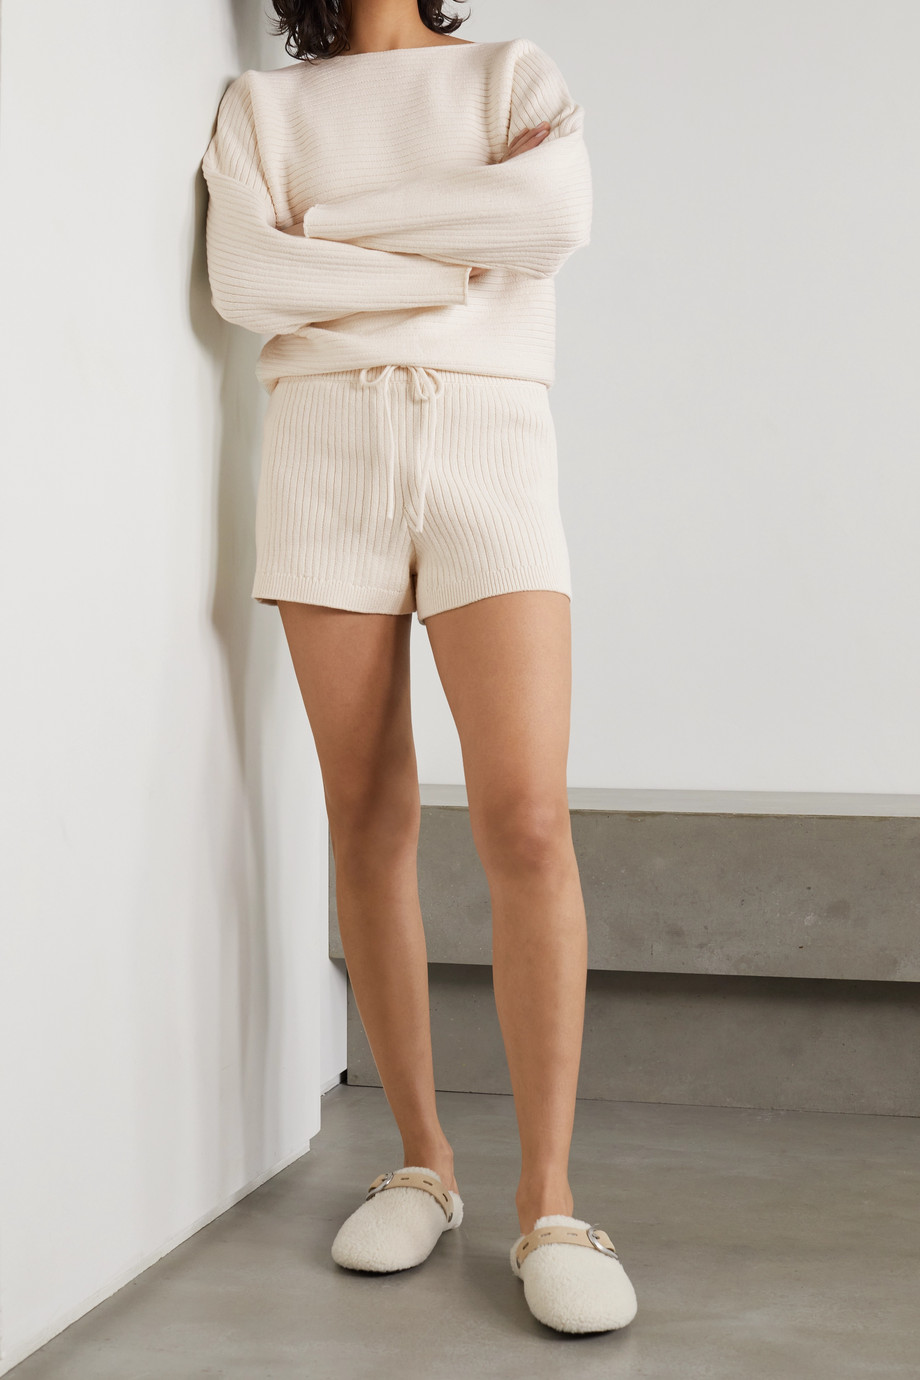 Reformation + NET SUSTAIN Cort ribbed organic cotton sweater and shorts set